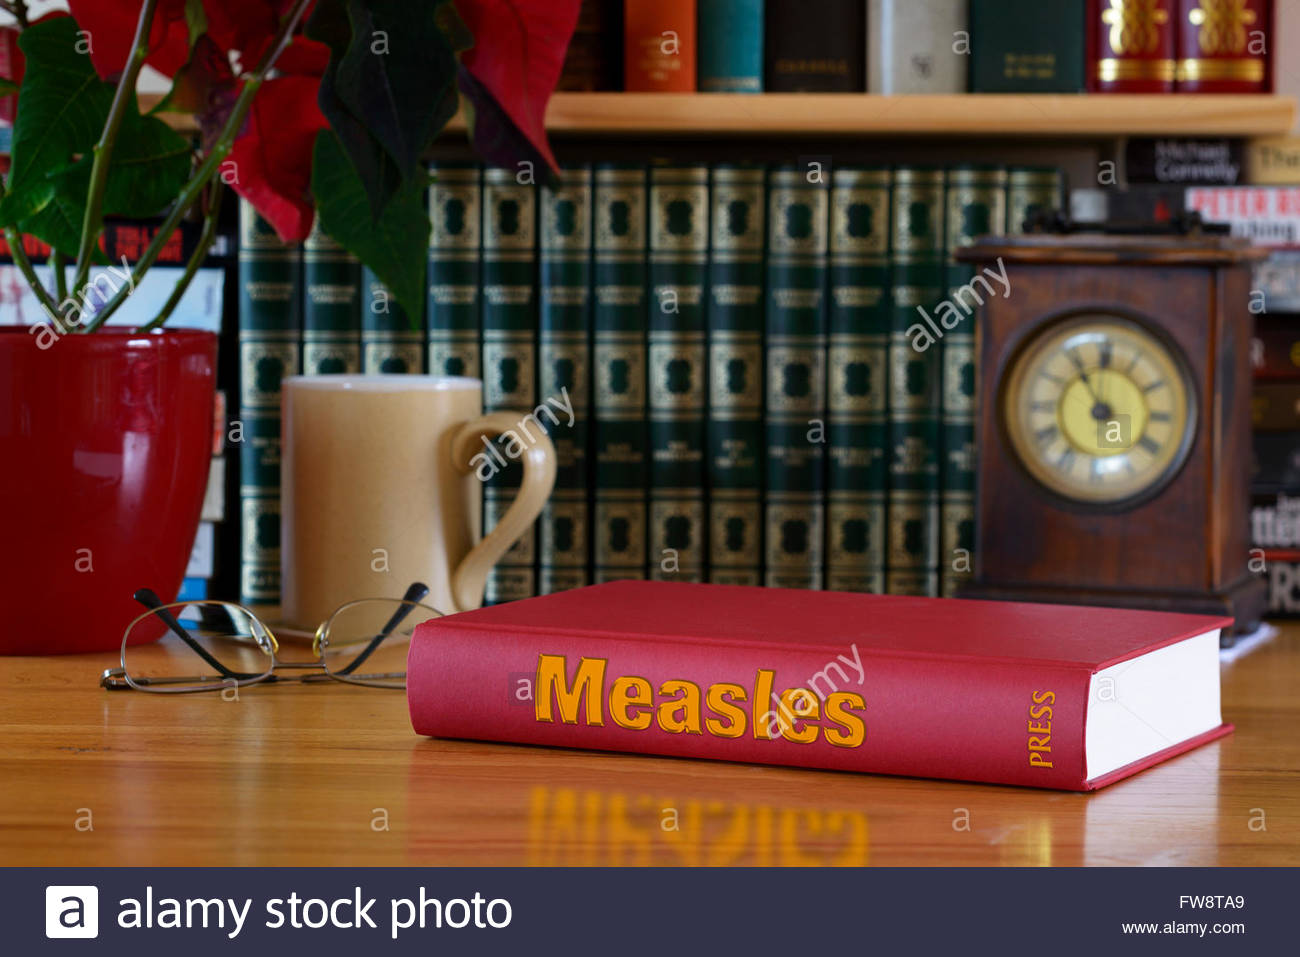 Measles book title on desk, England - Stock Image